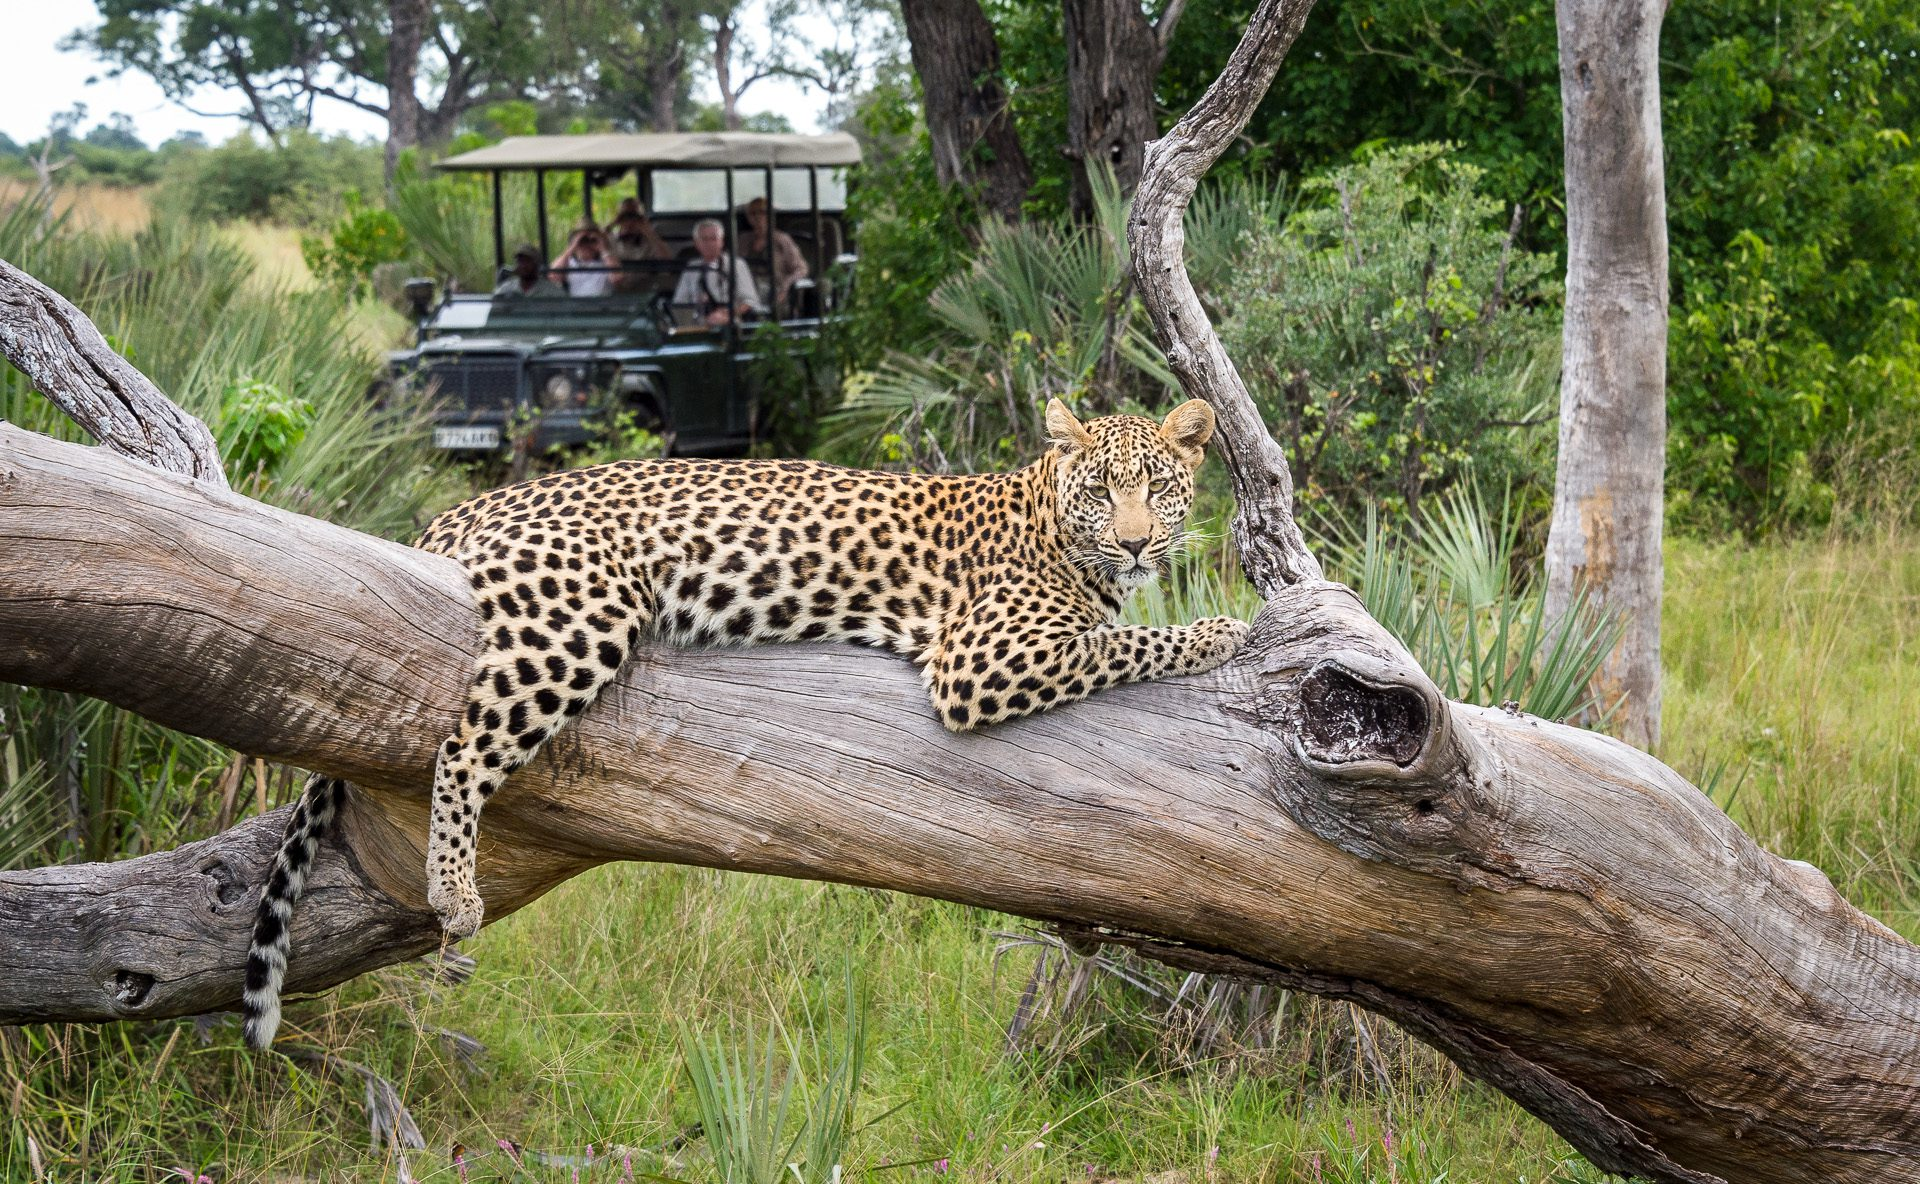 seba camp game drive with guests observing a leopard in a tree on the best botswana safari